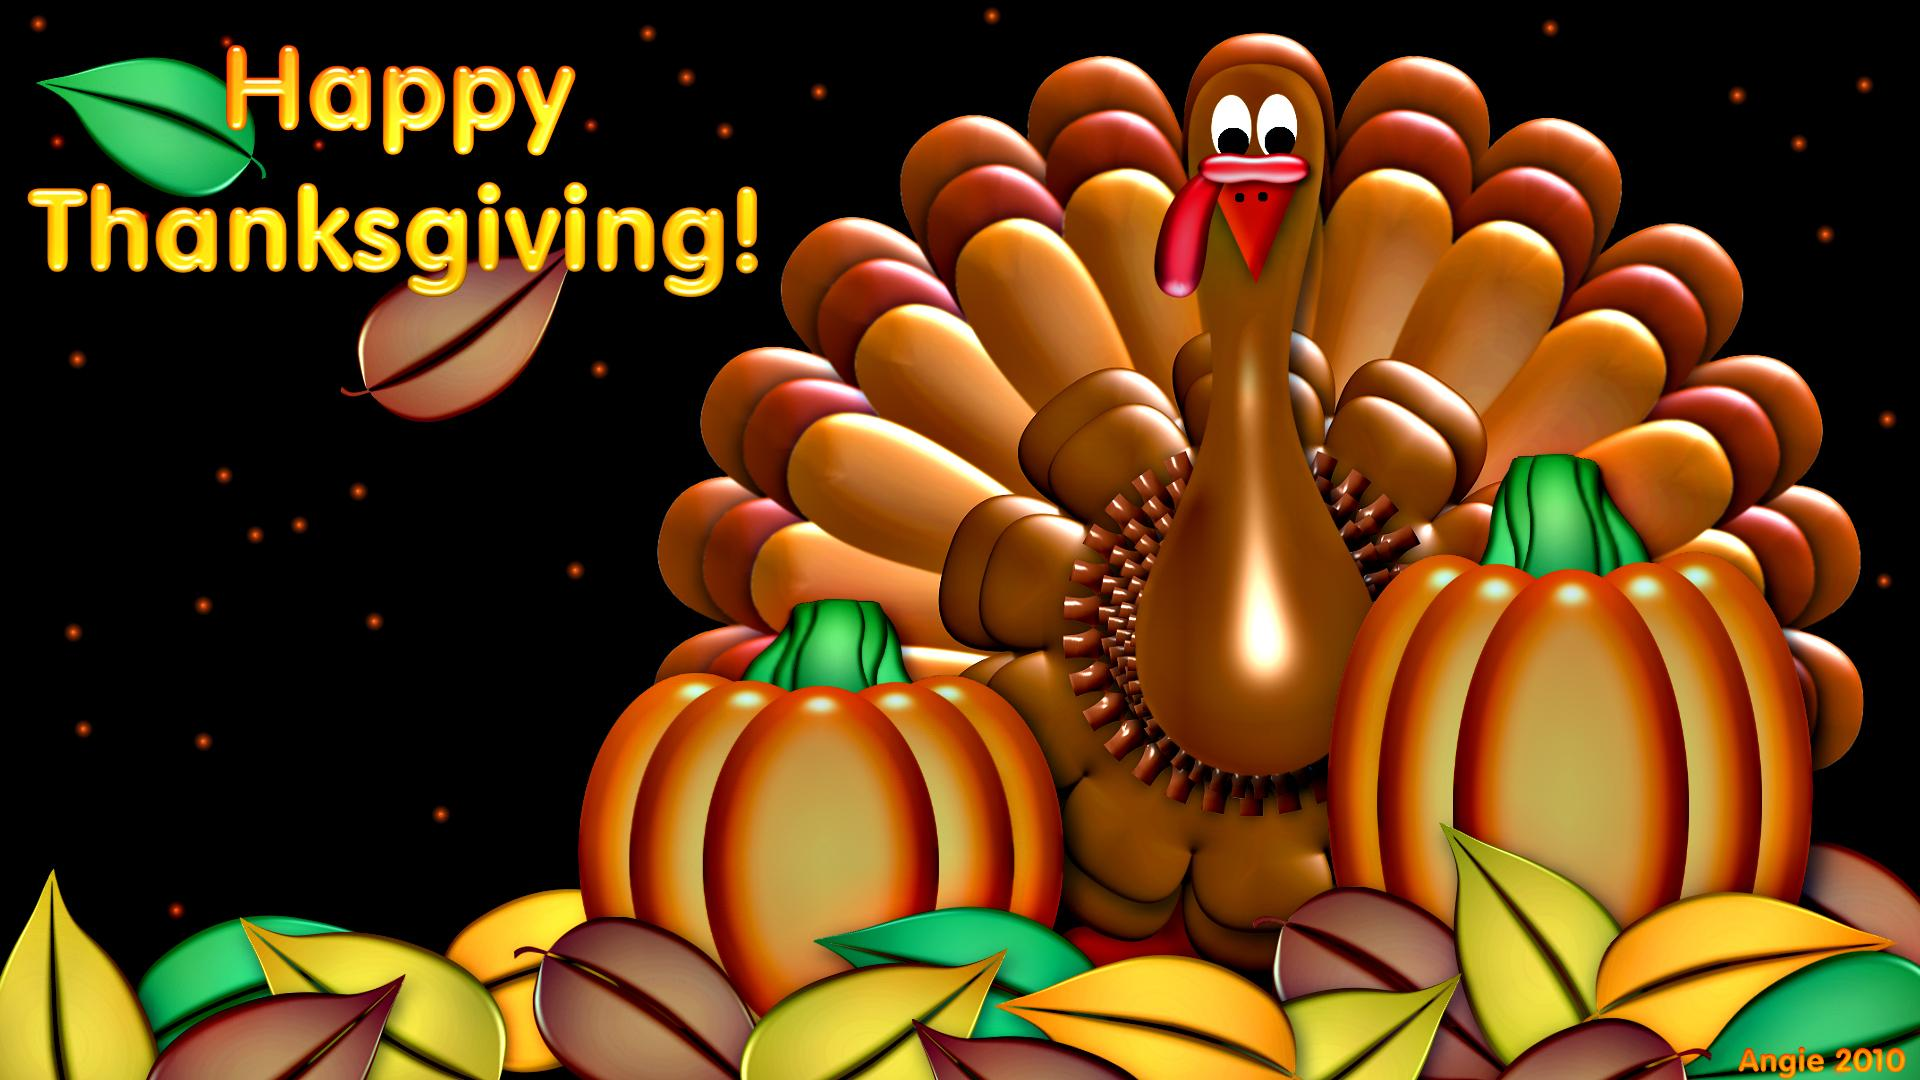 Hd thanksgiving wallpaper   SF Wallpaper 1920x1080